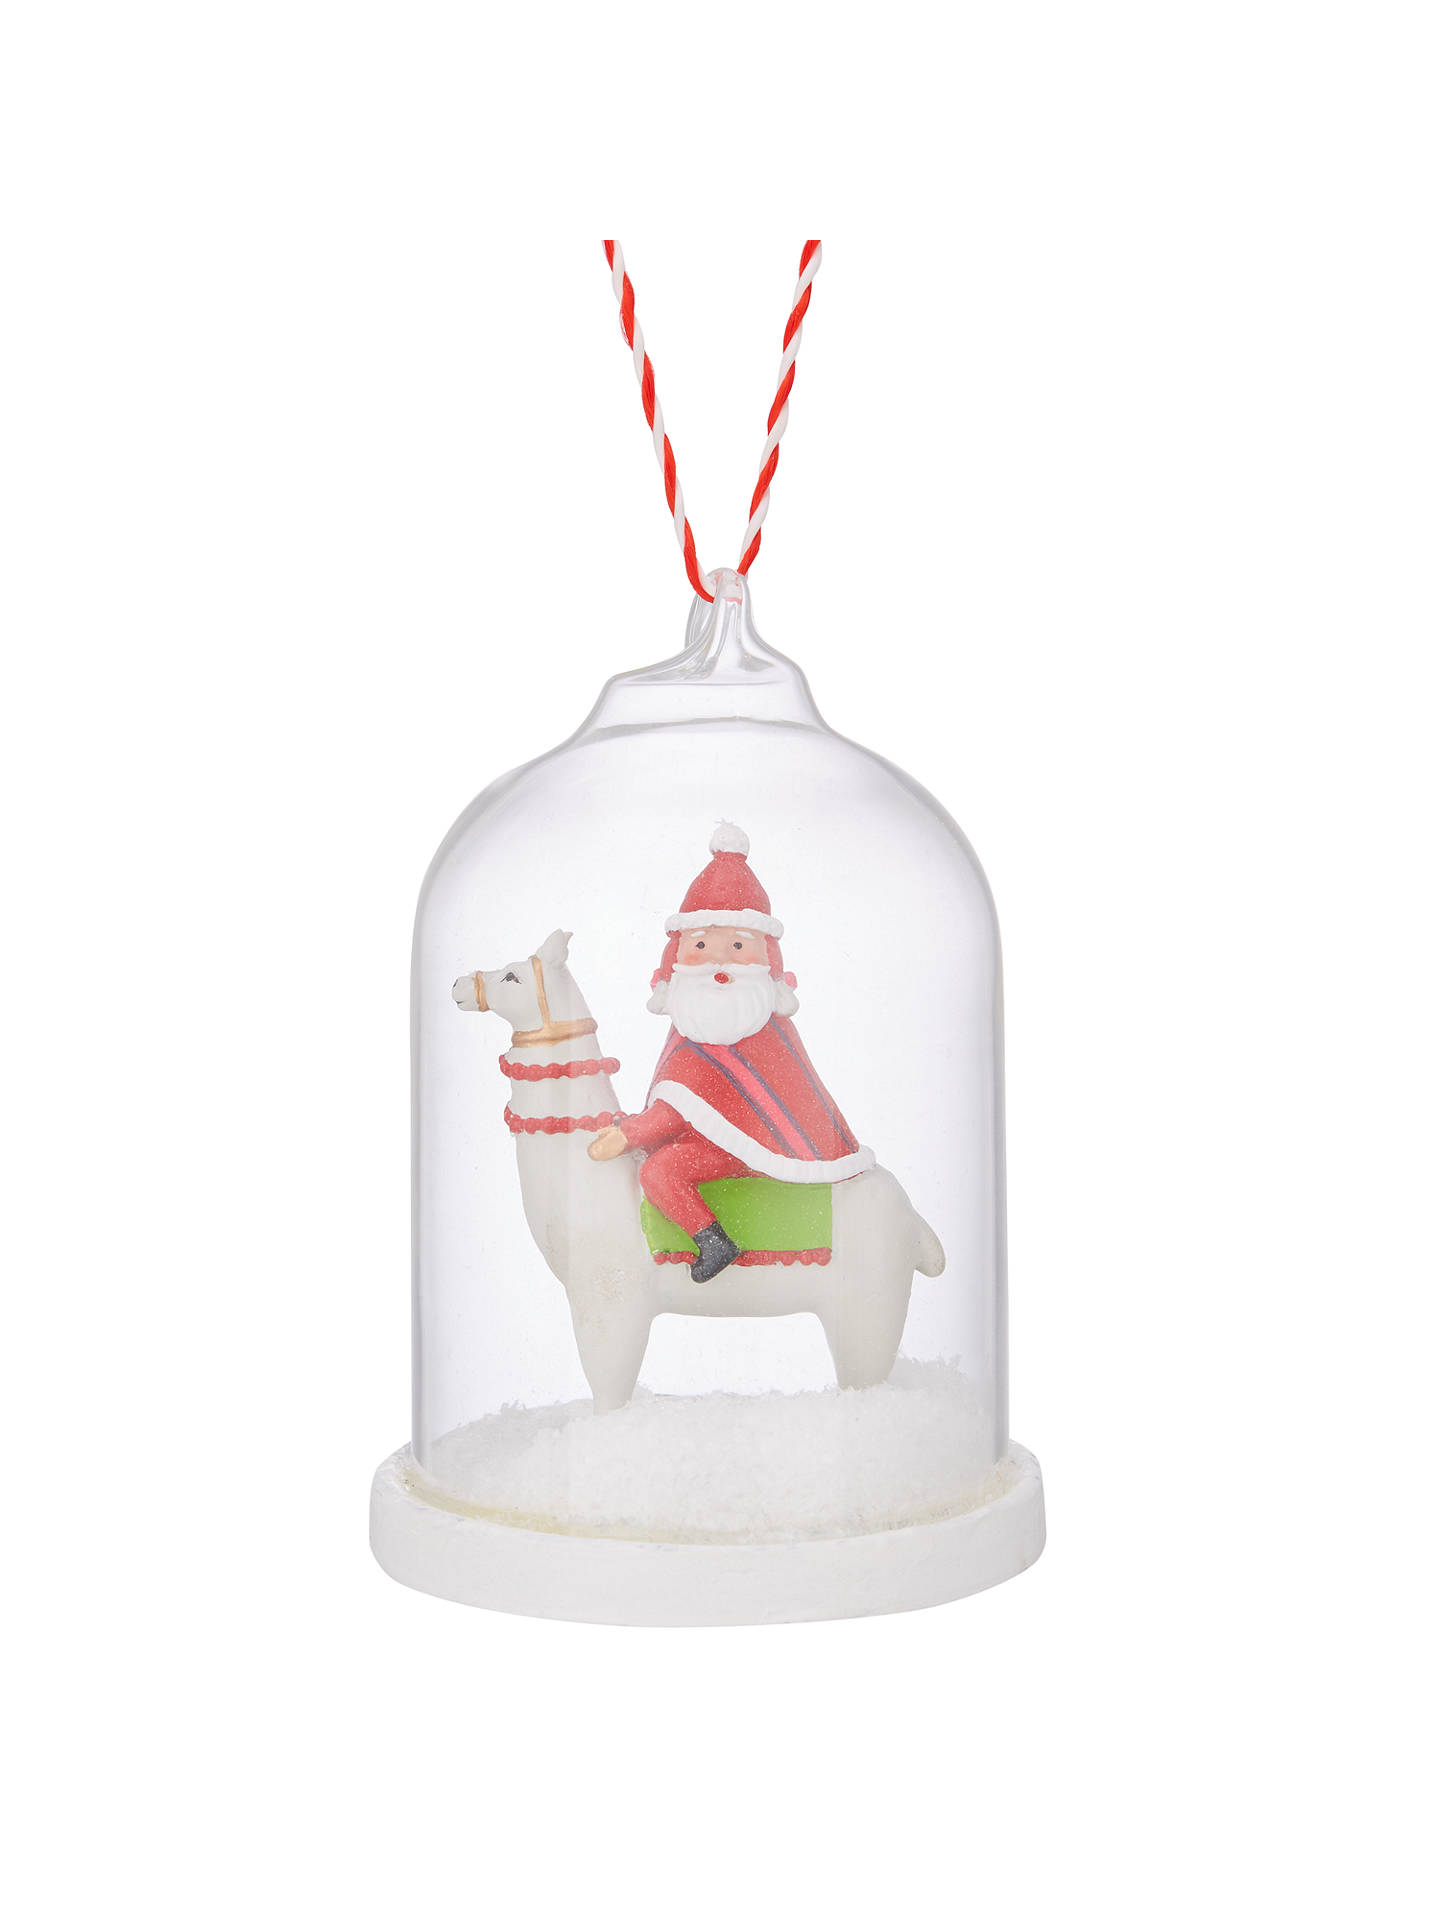 Llama Christmas Decorations.John Lewis Lima Llama Santa On A Llama Tree Decoration At